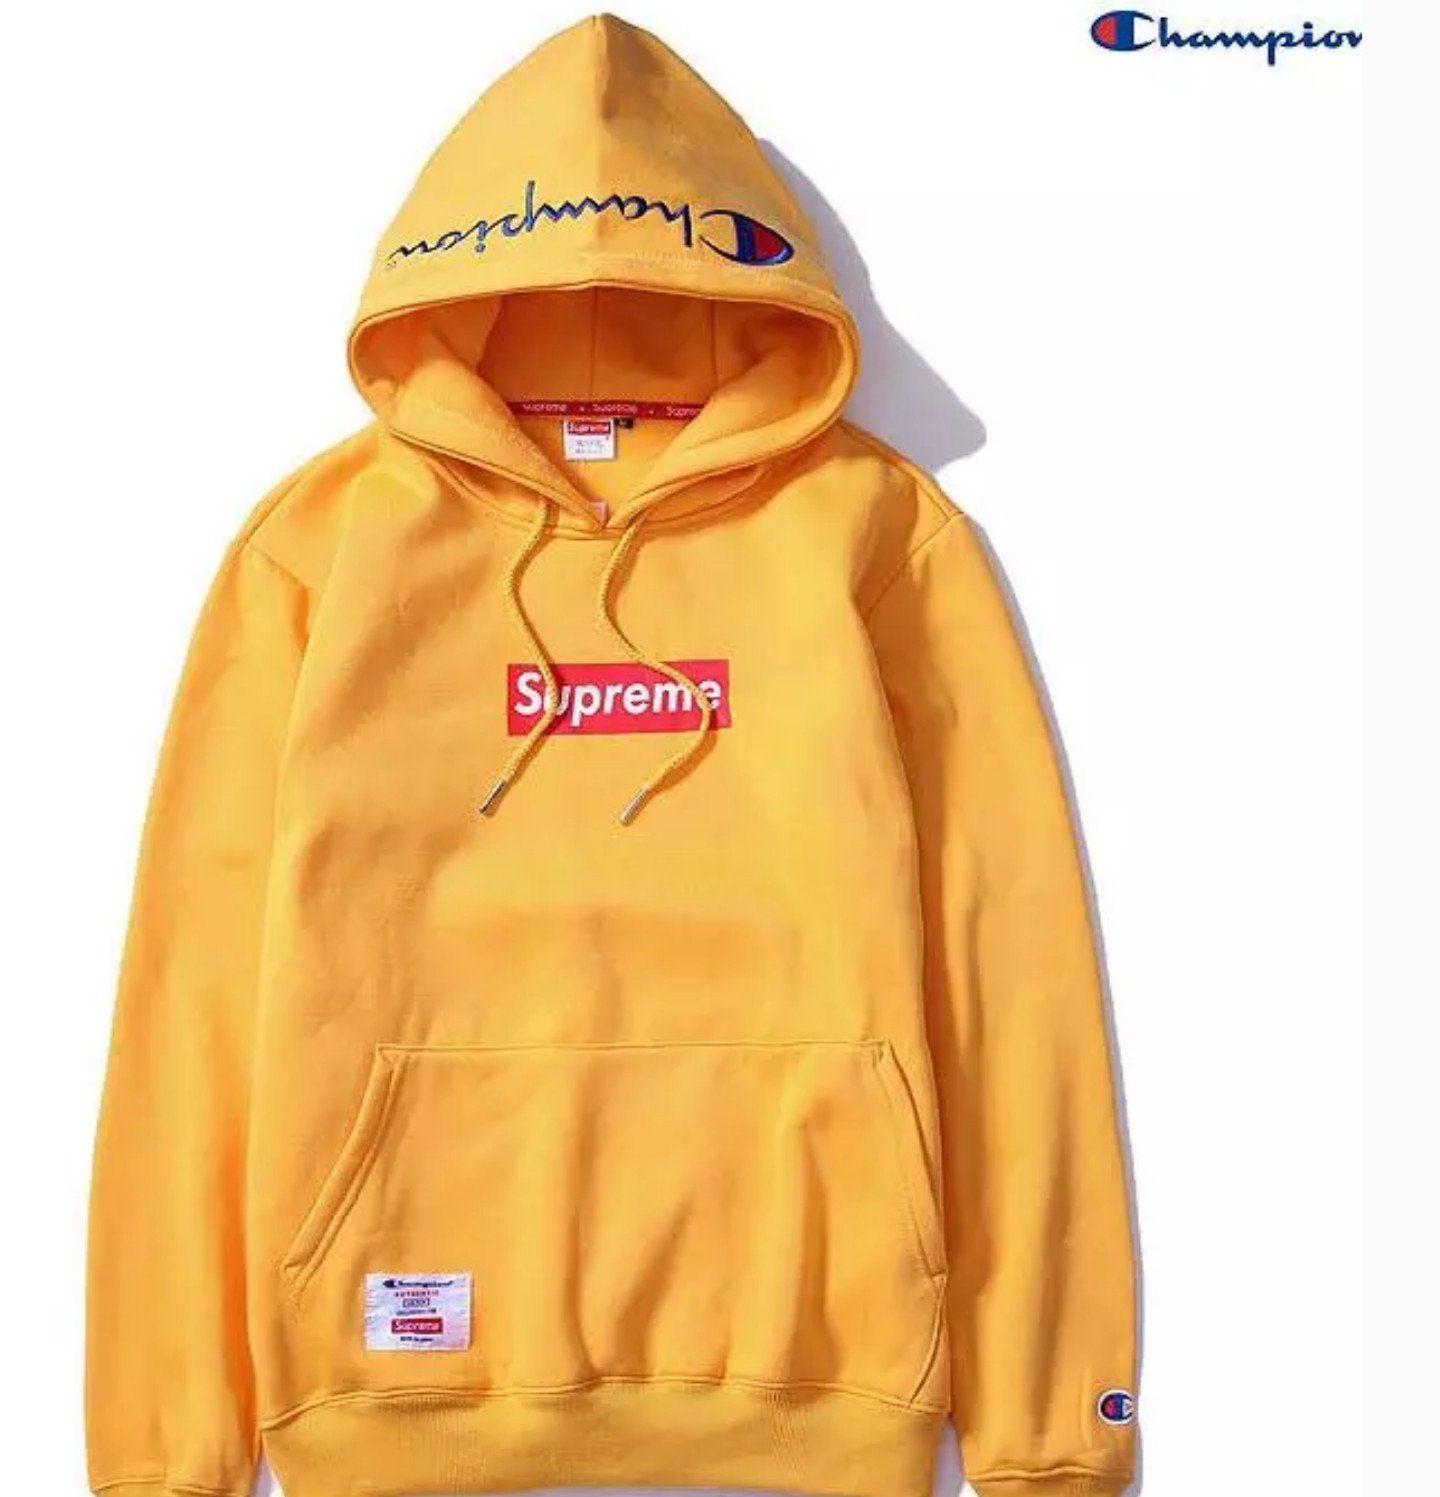 championship supreme hoodie hoodies pinterest. Black Bedroom Furniture Sets. Home Design Ideas